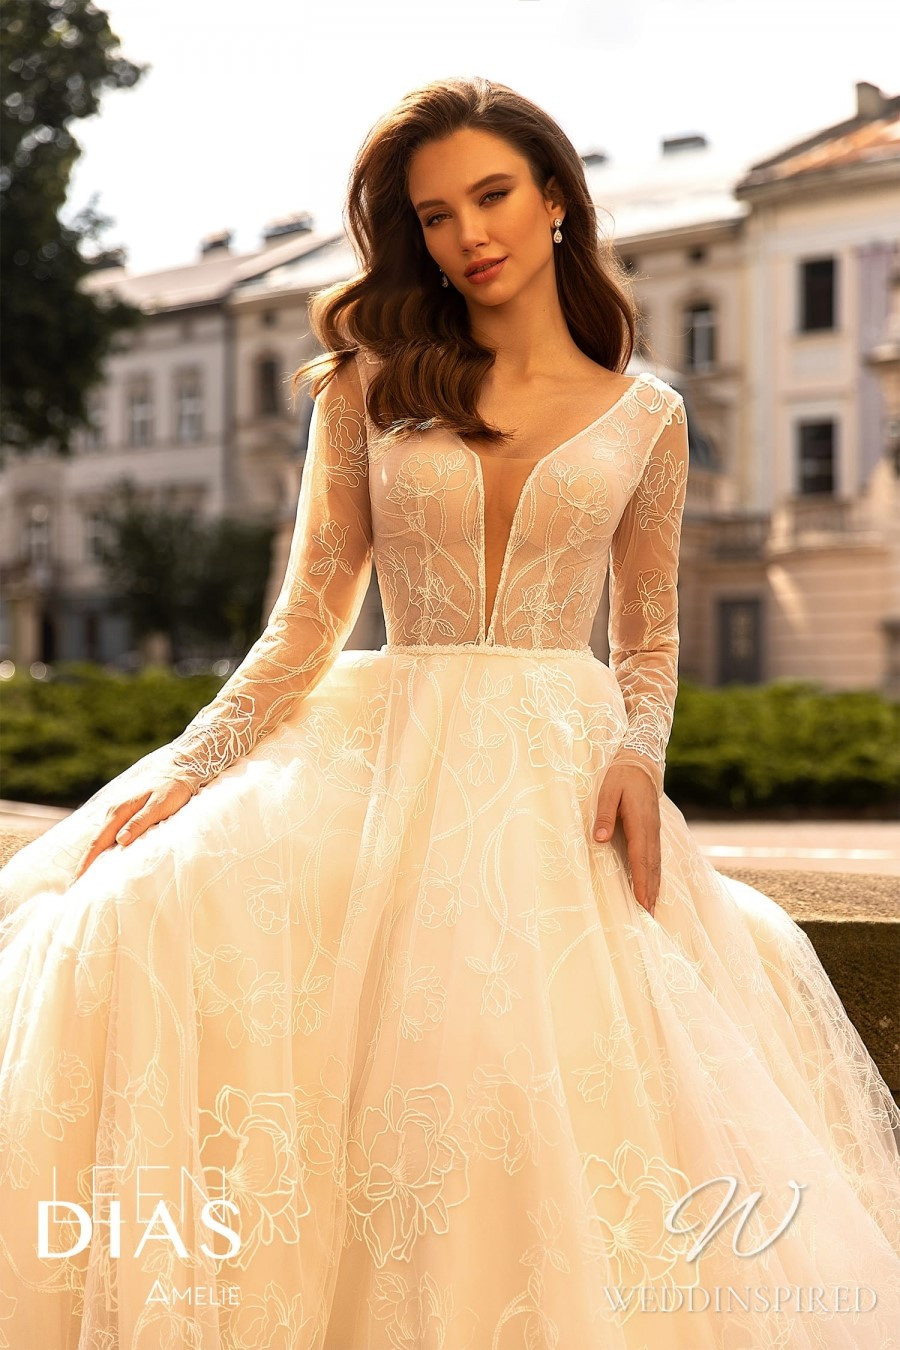 A Leen Dias 2021 ivory lace and tulle A-line wedding dress with long sleeves